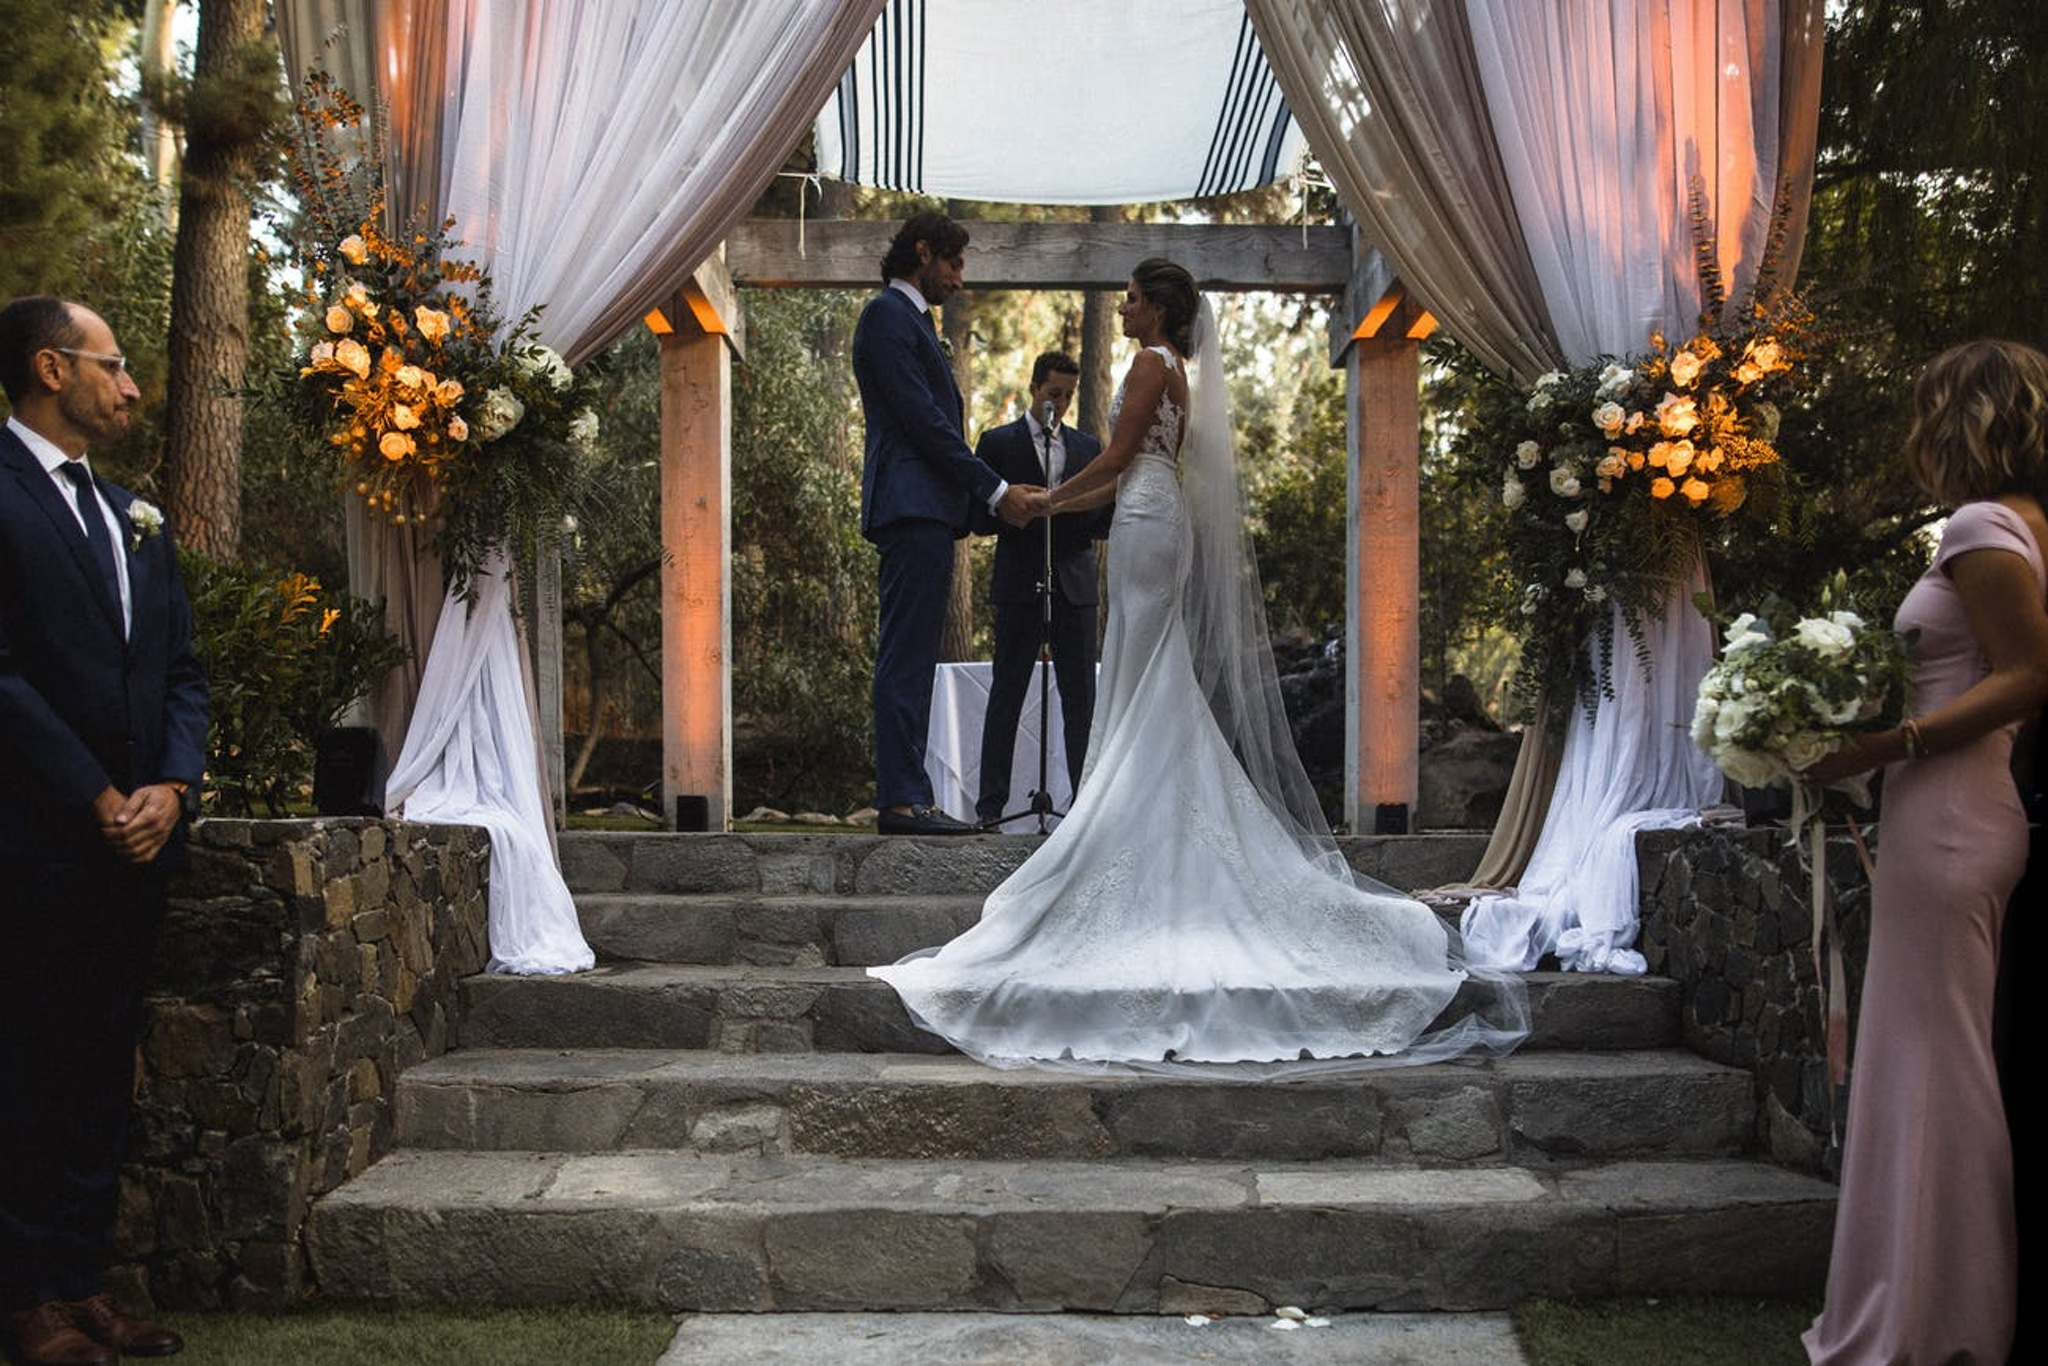 outdoor fall wedding ceremony with white draping and stone steps